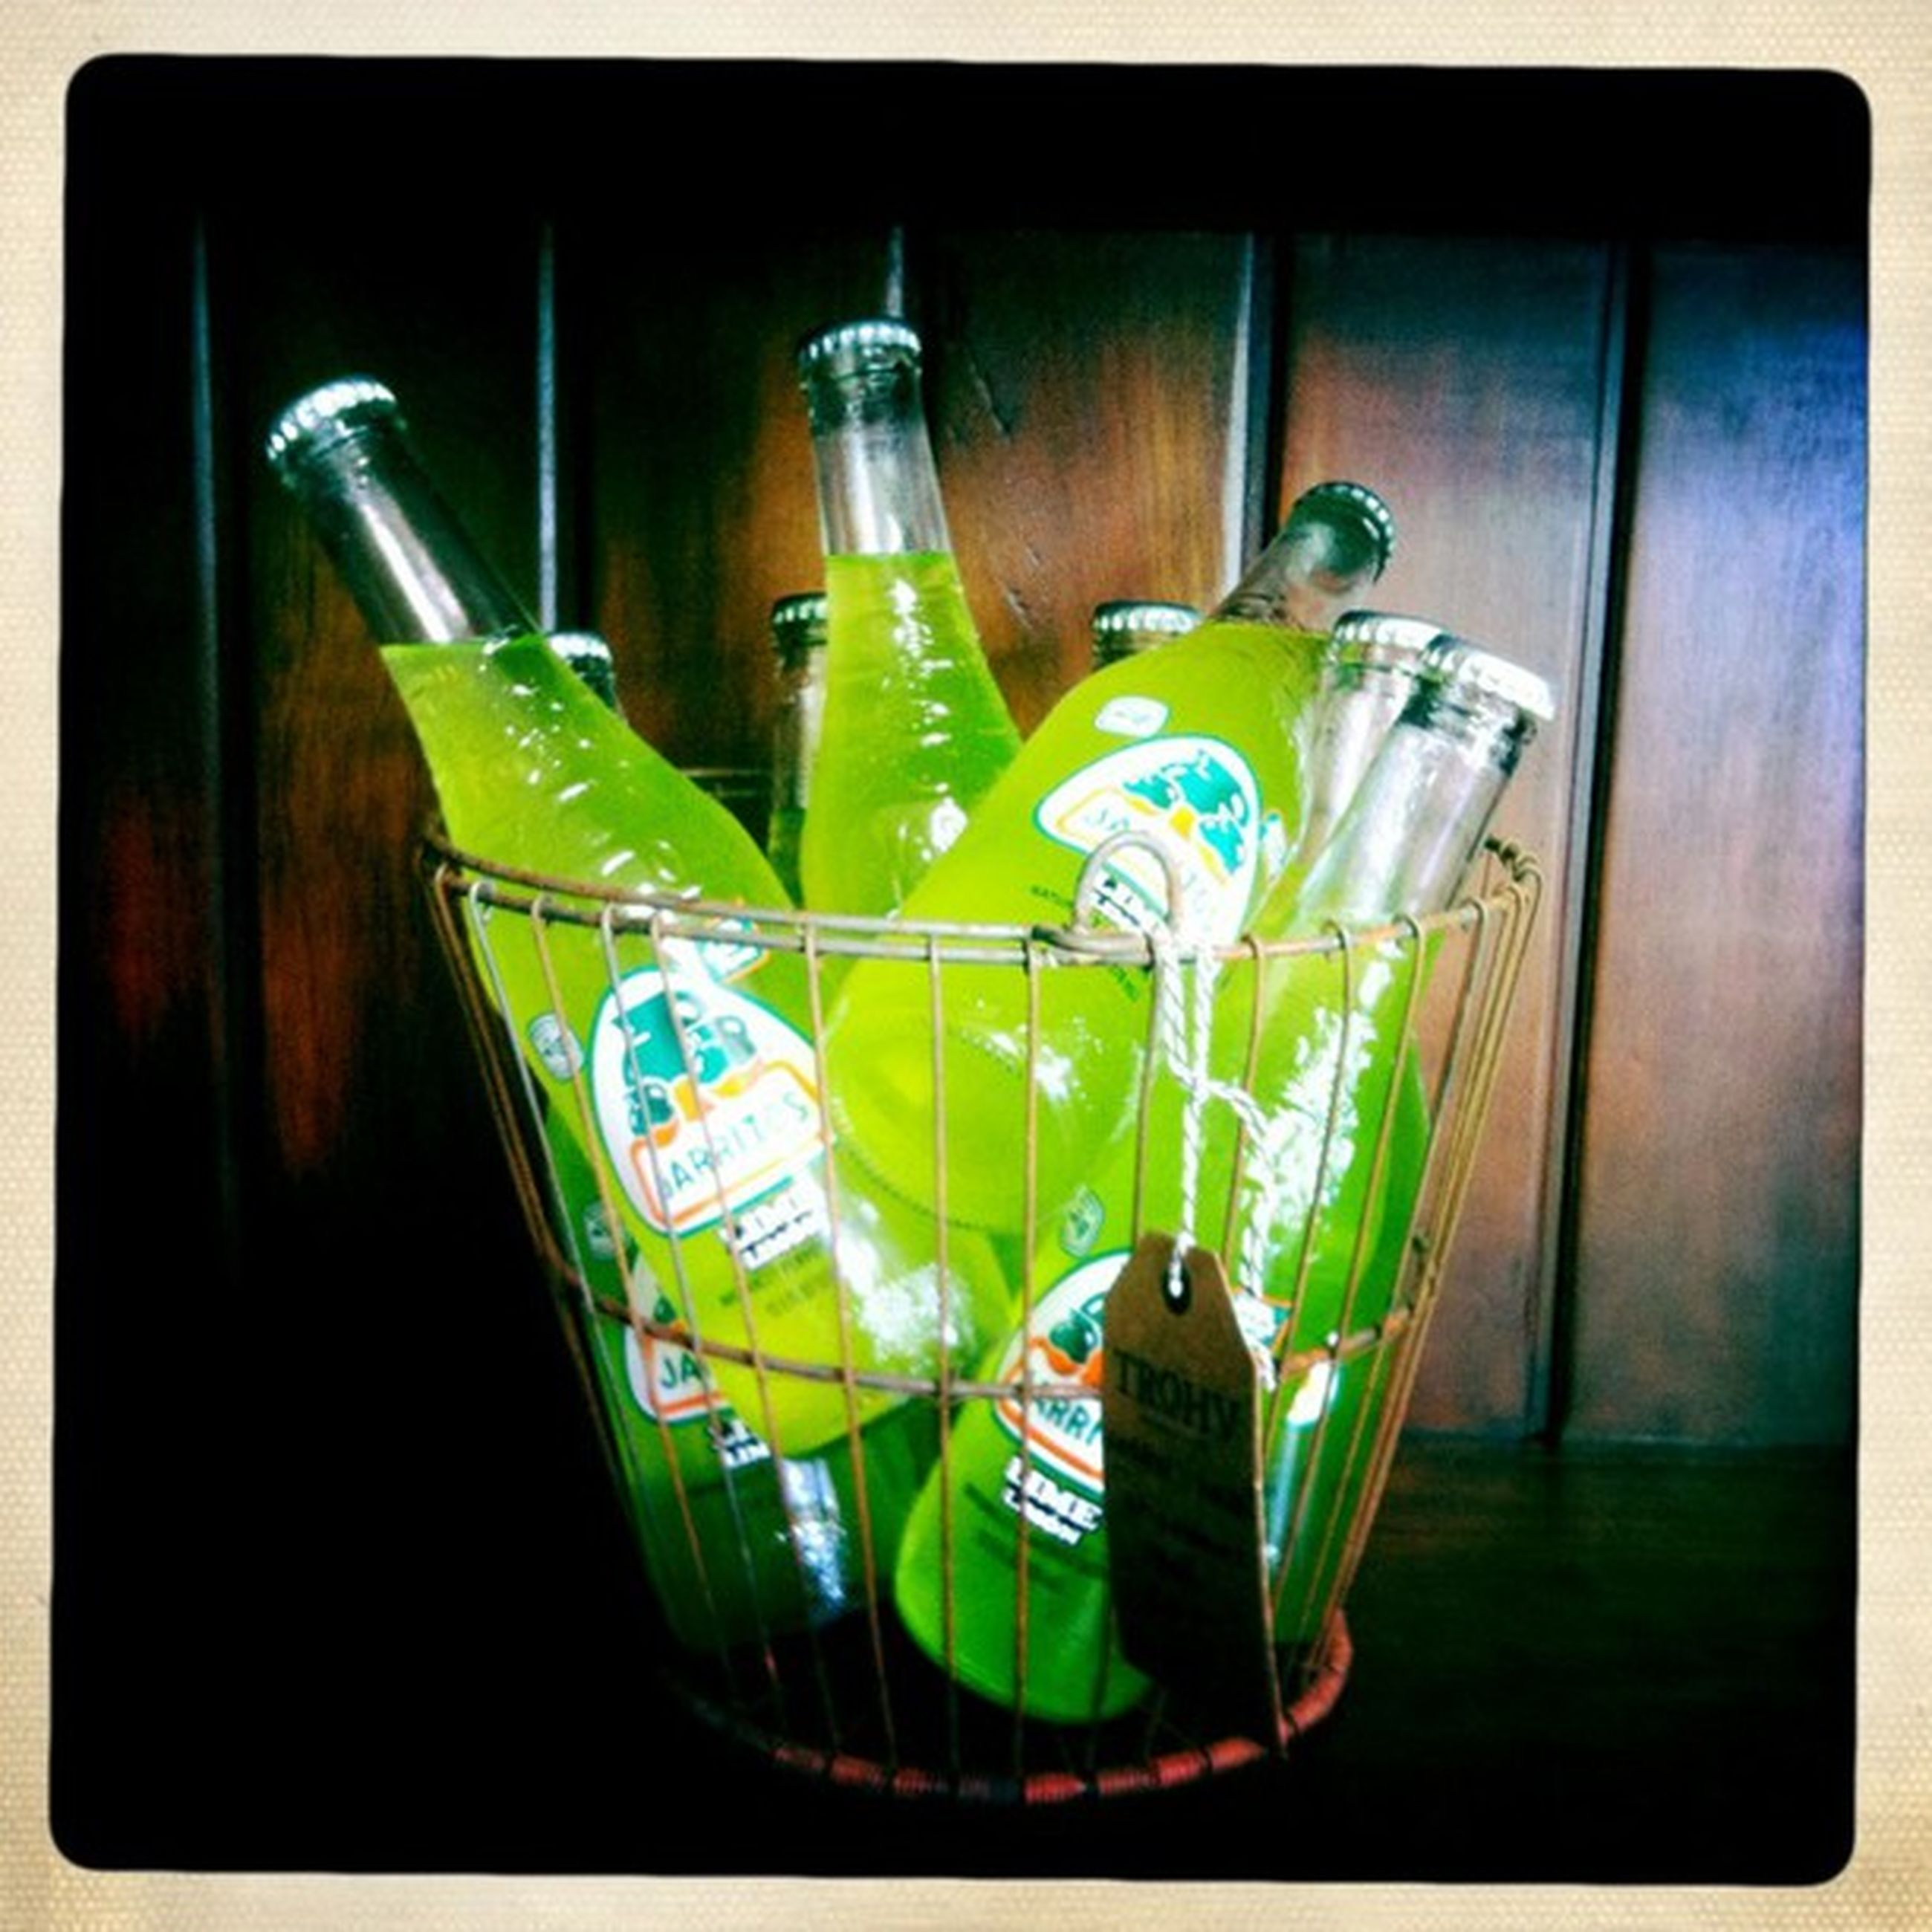 indoors, transfer print, still life, auto post production filter, table, green color, multi colored, close-up, bottle, glass - material, no people, variation, wood - material, metal, plastic, high angle view, drink, blue, container, reflection